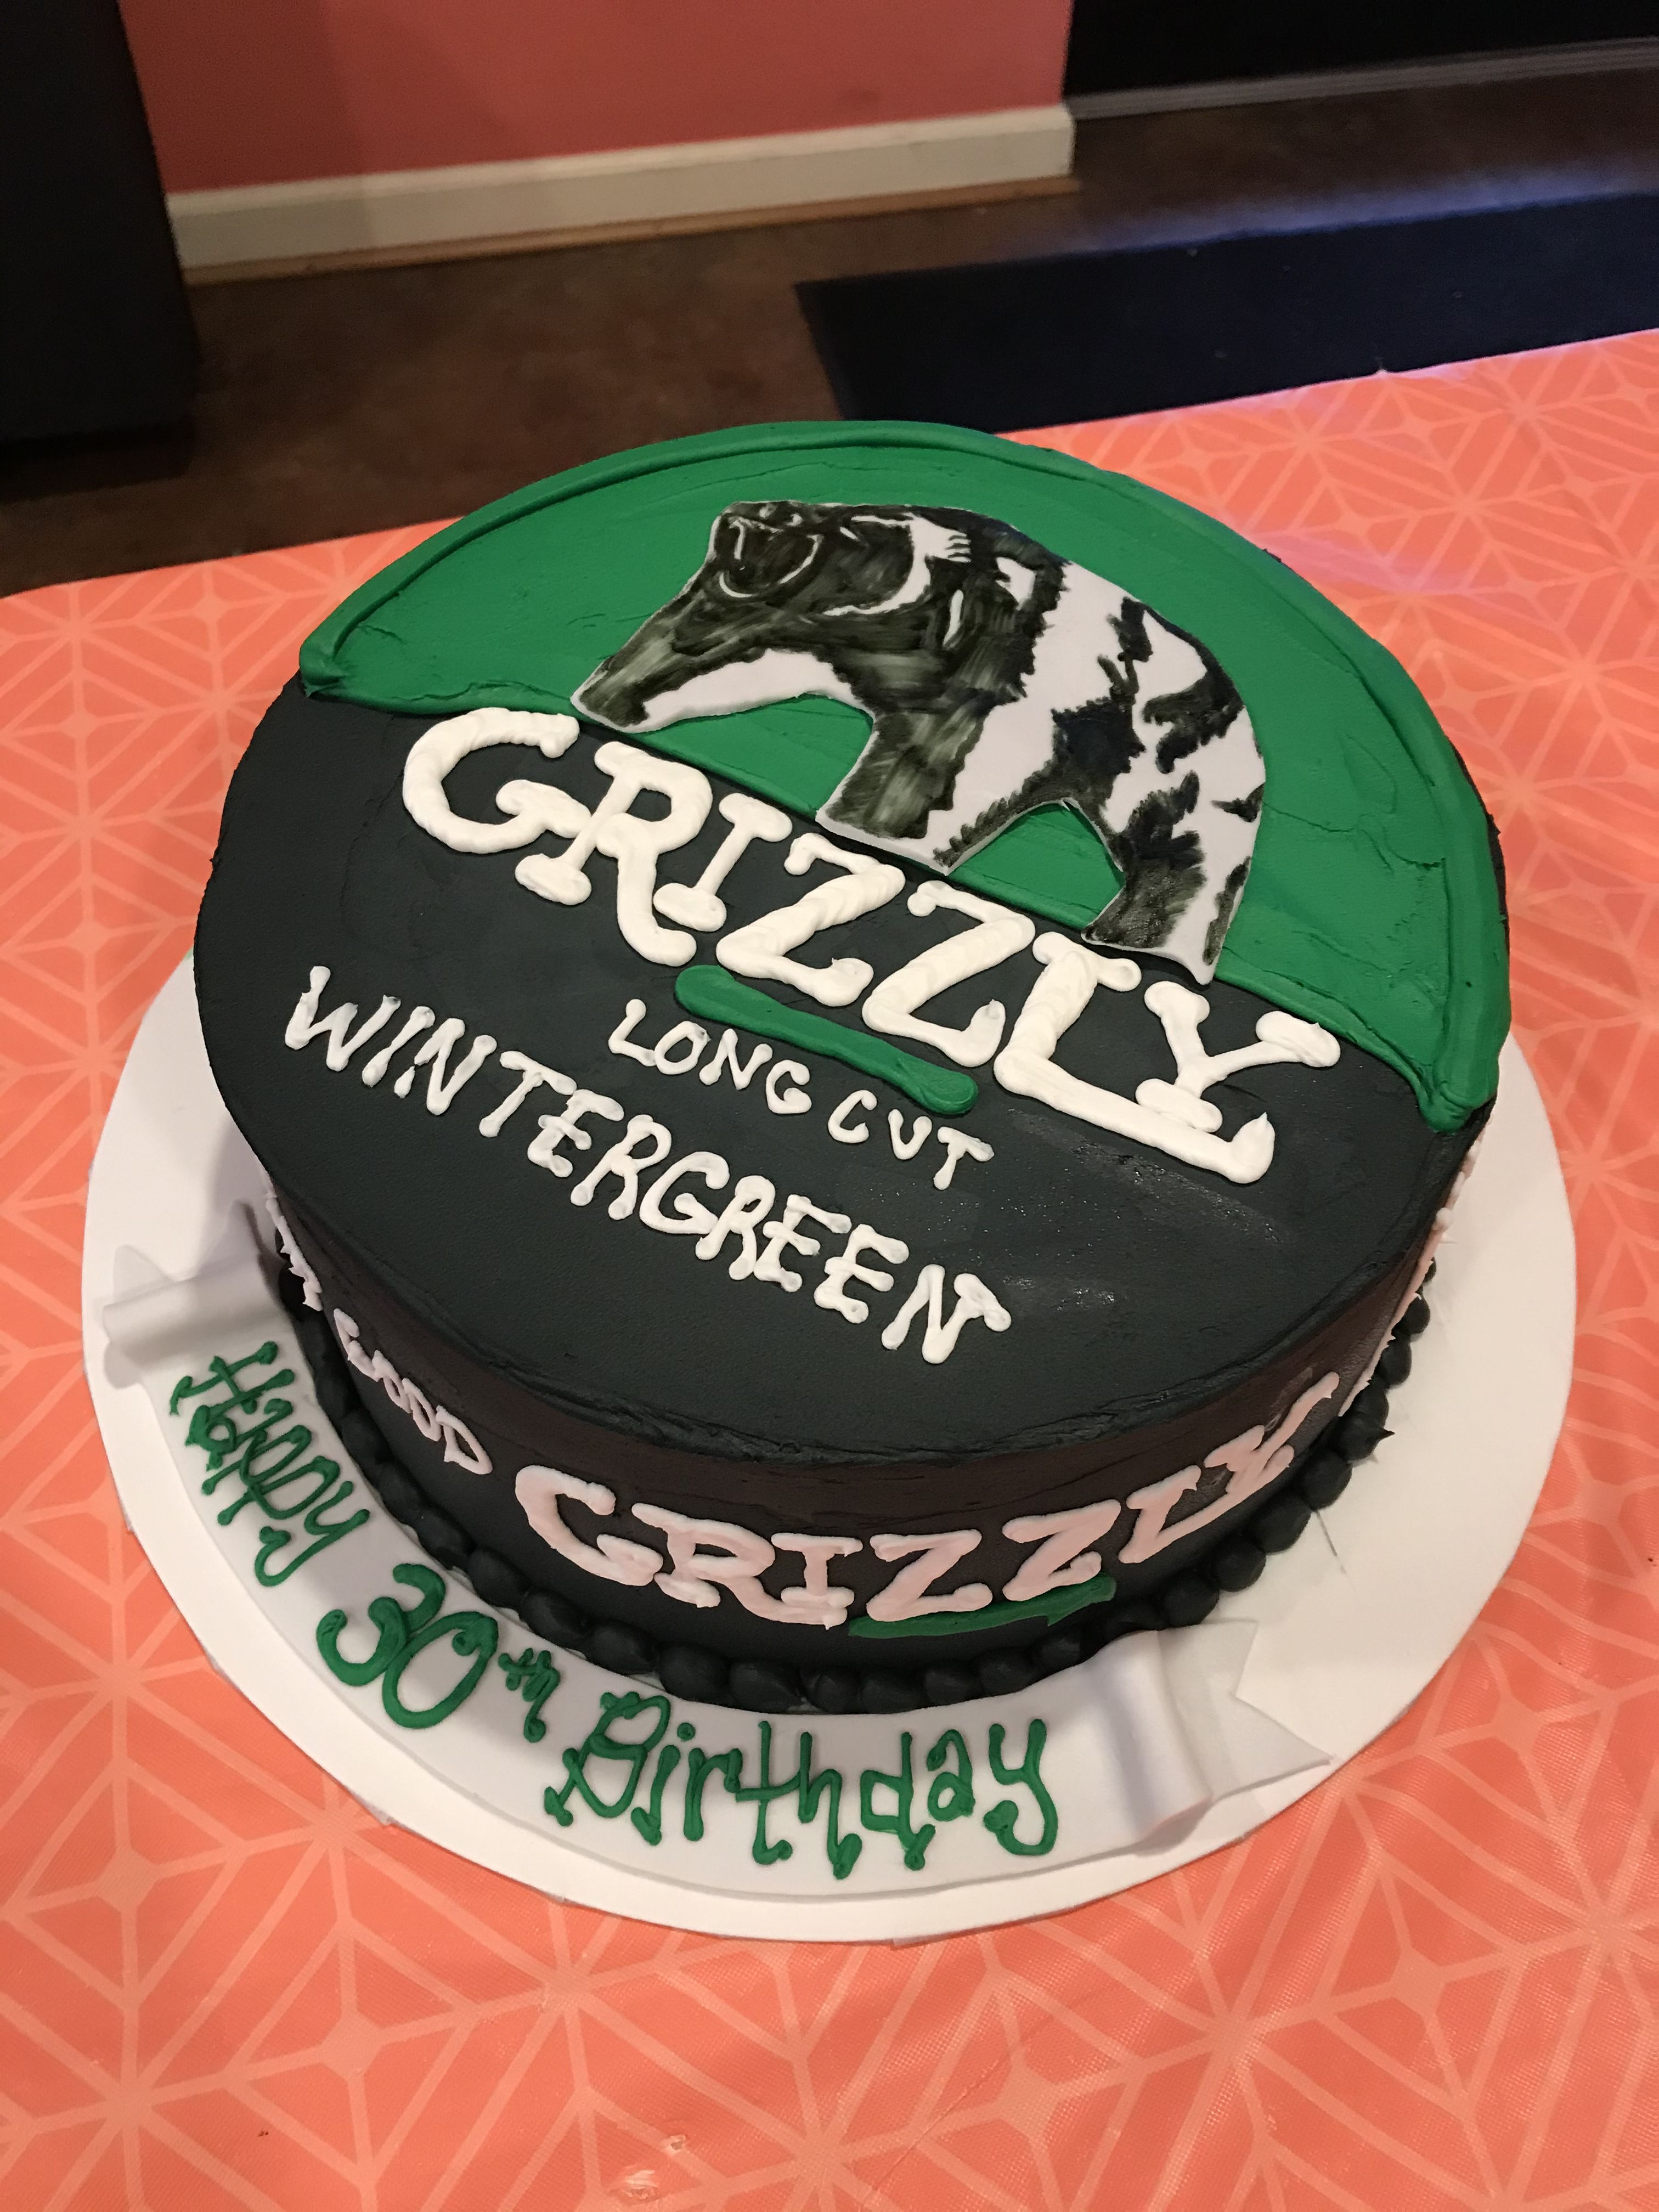 Grizzly dip can cake sweet dreams bakery cake in a can